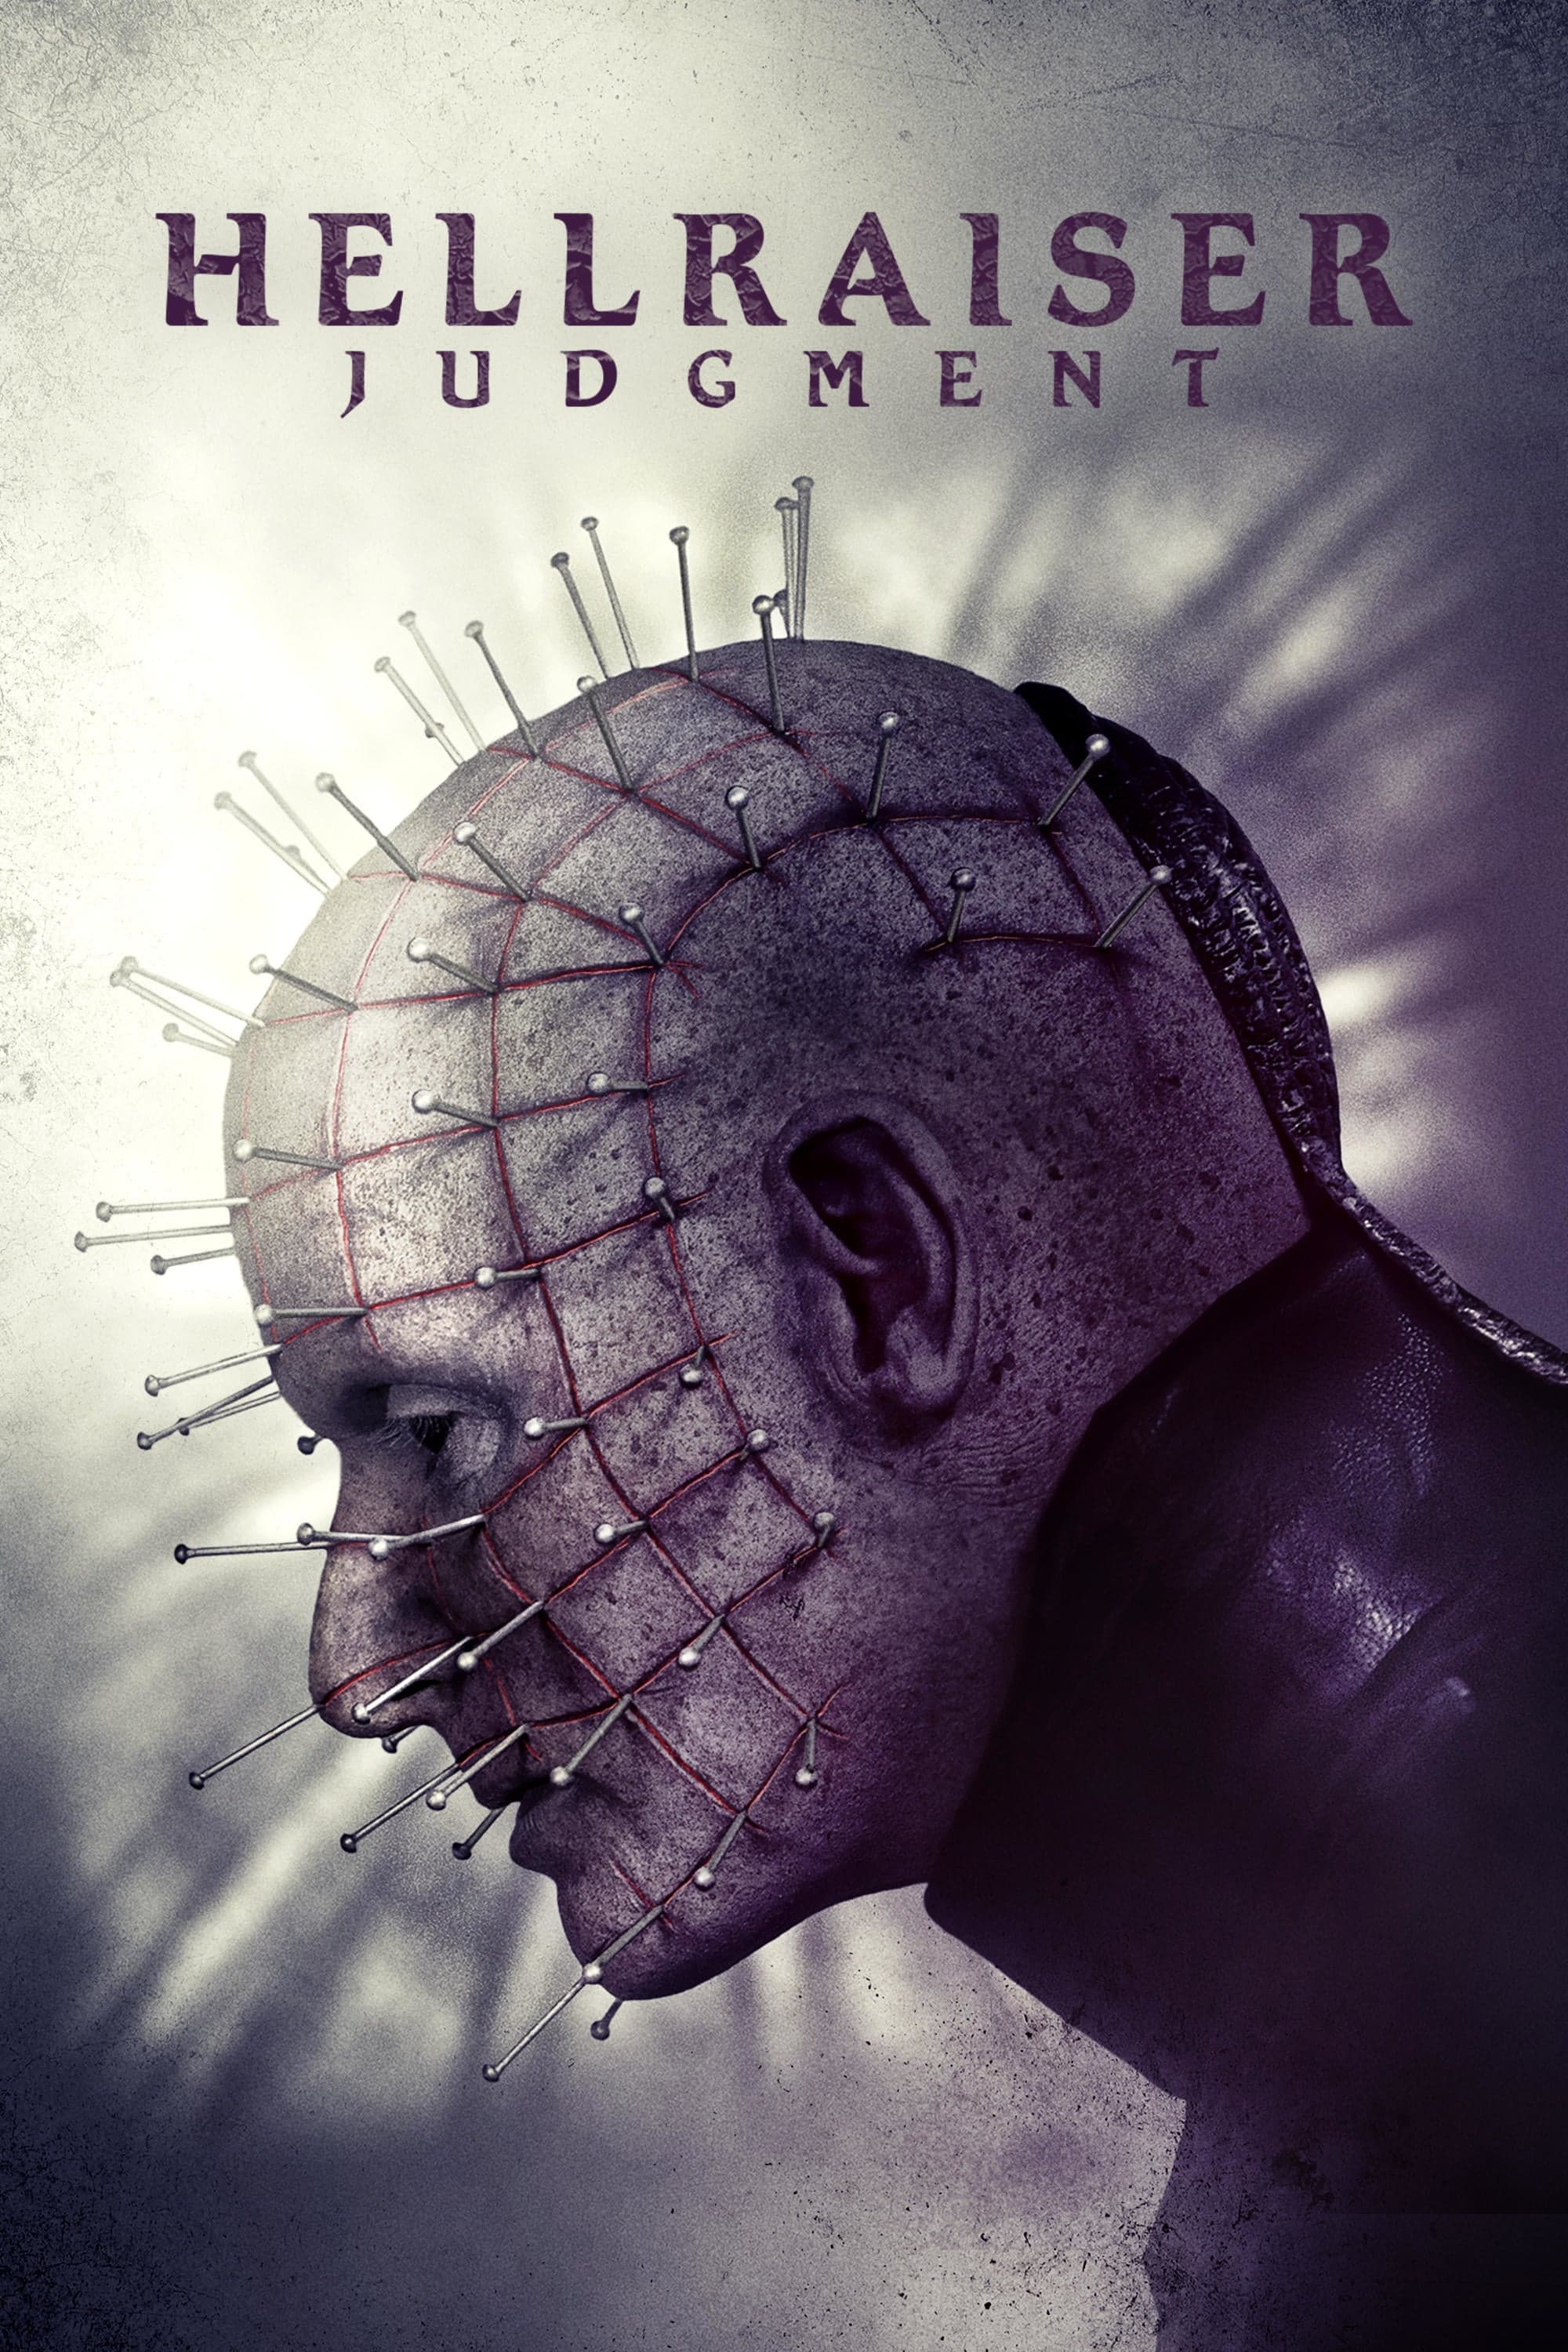 Regarder Hellraiser: Judgment en streaming gratuit